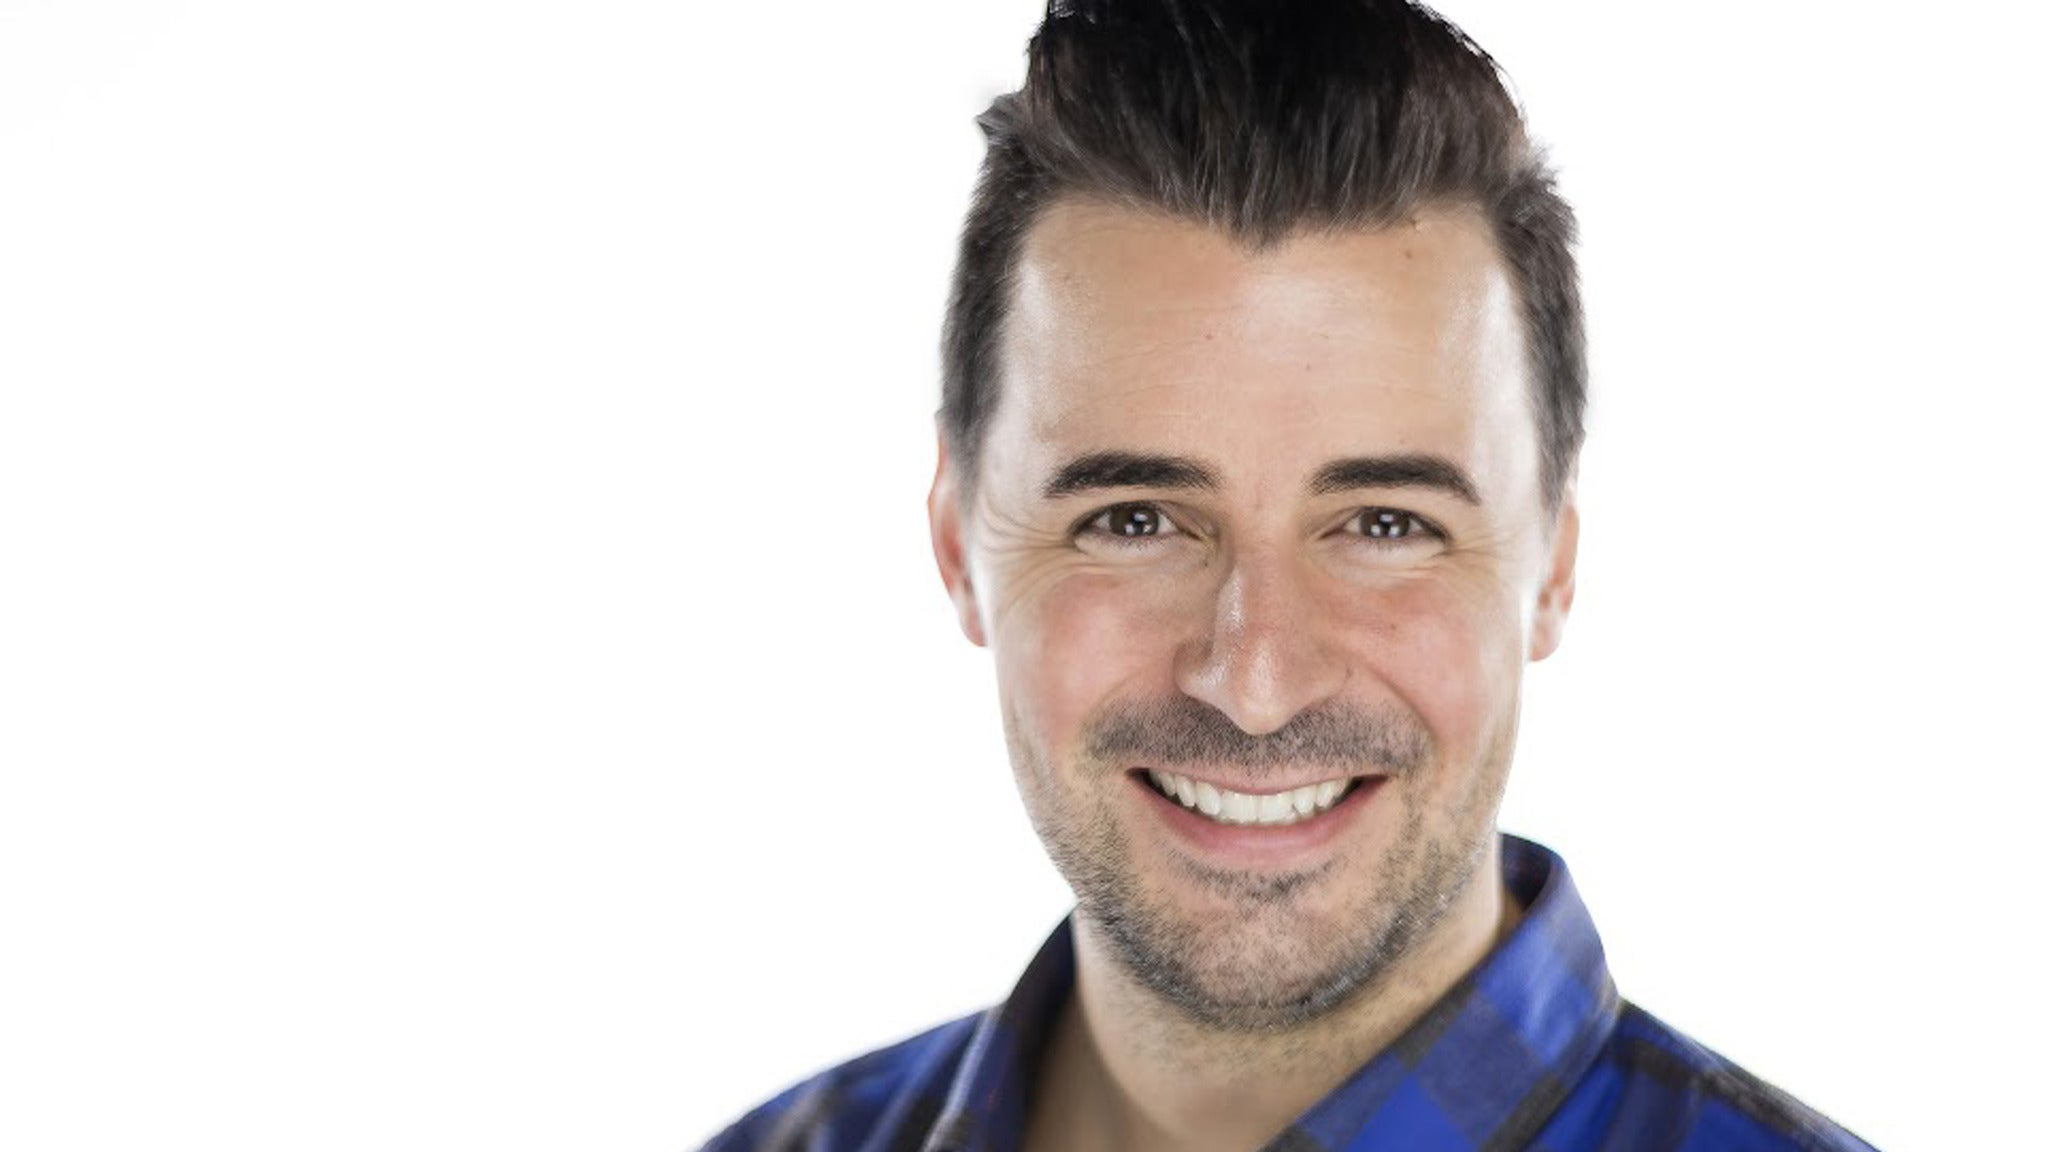 Pete Lee at San Jose Improv - San Jose, CA 95113